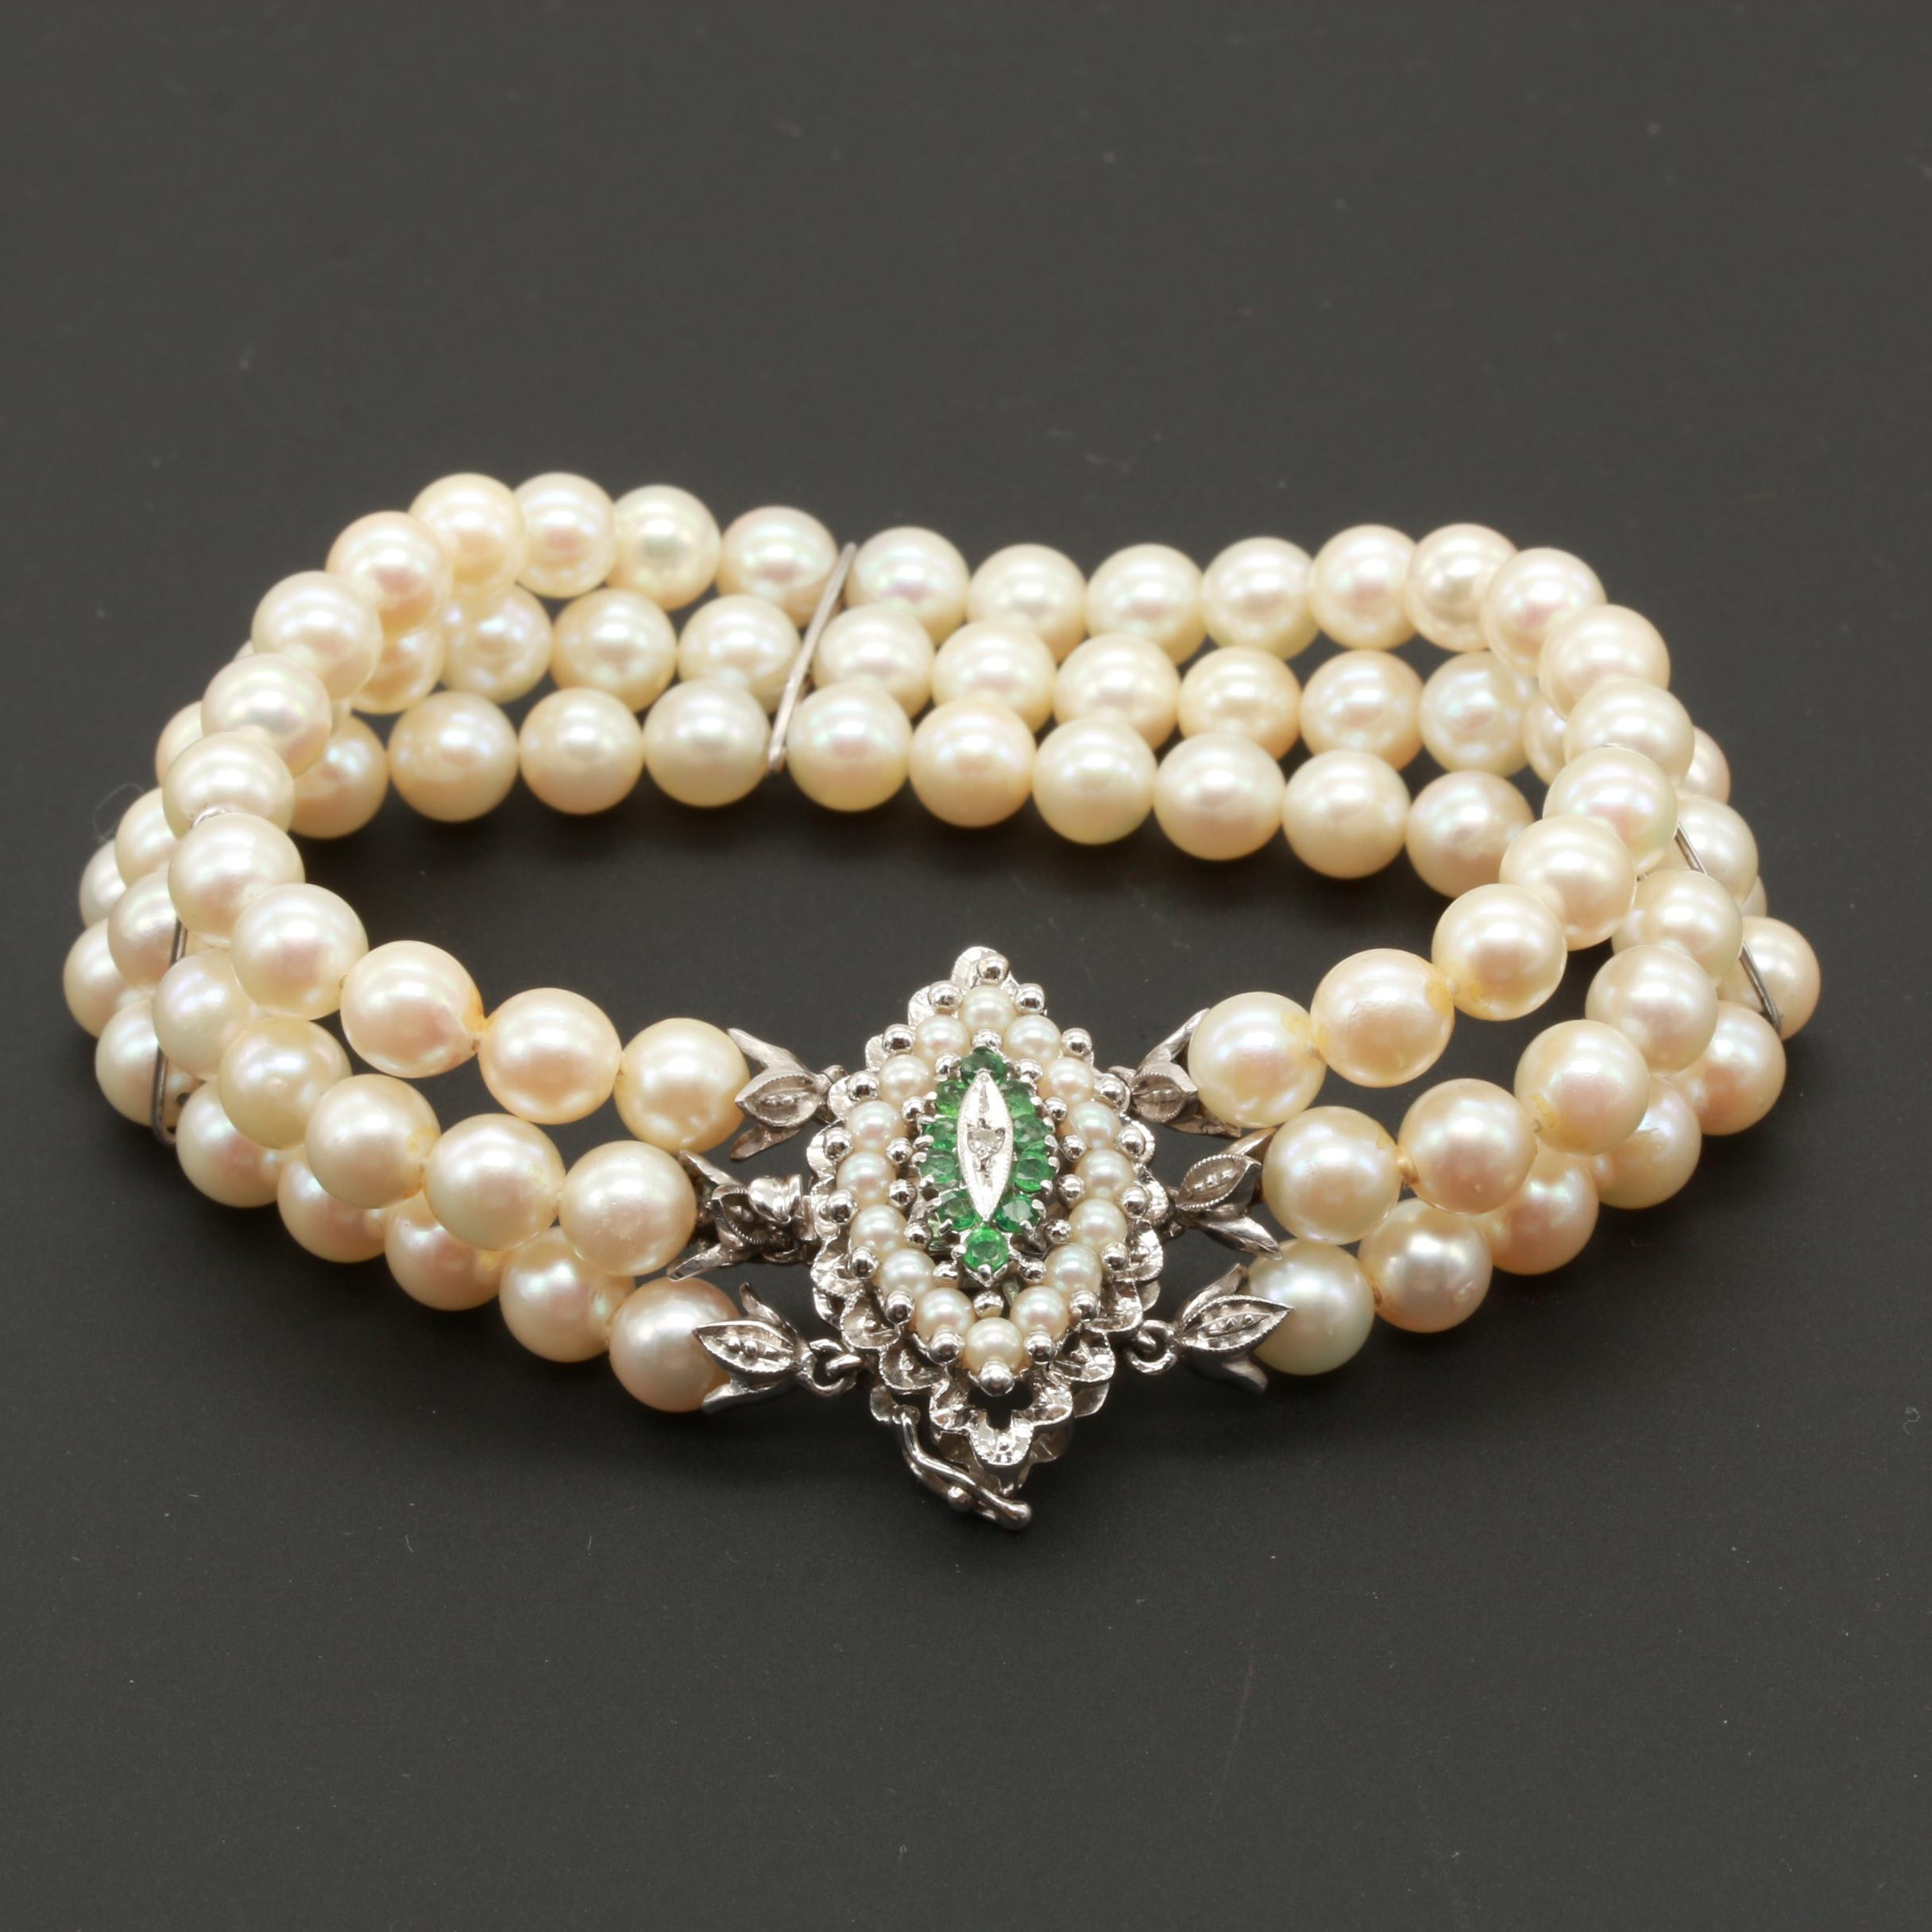 Vintage 18K White Gold Cultured Pearl Bracelet with Emerald and Diamond Accents